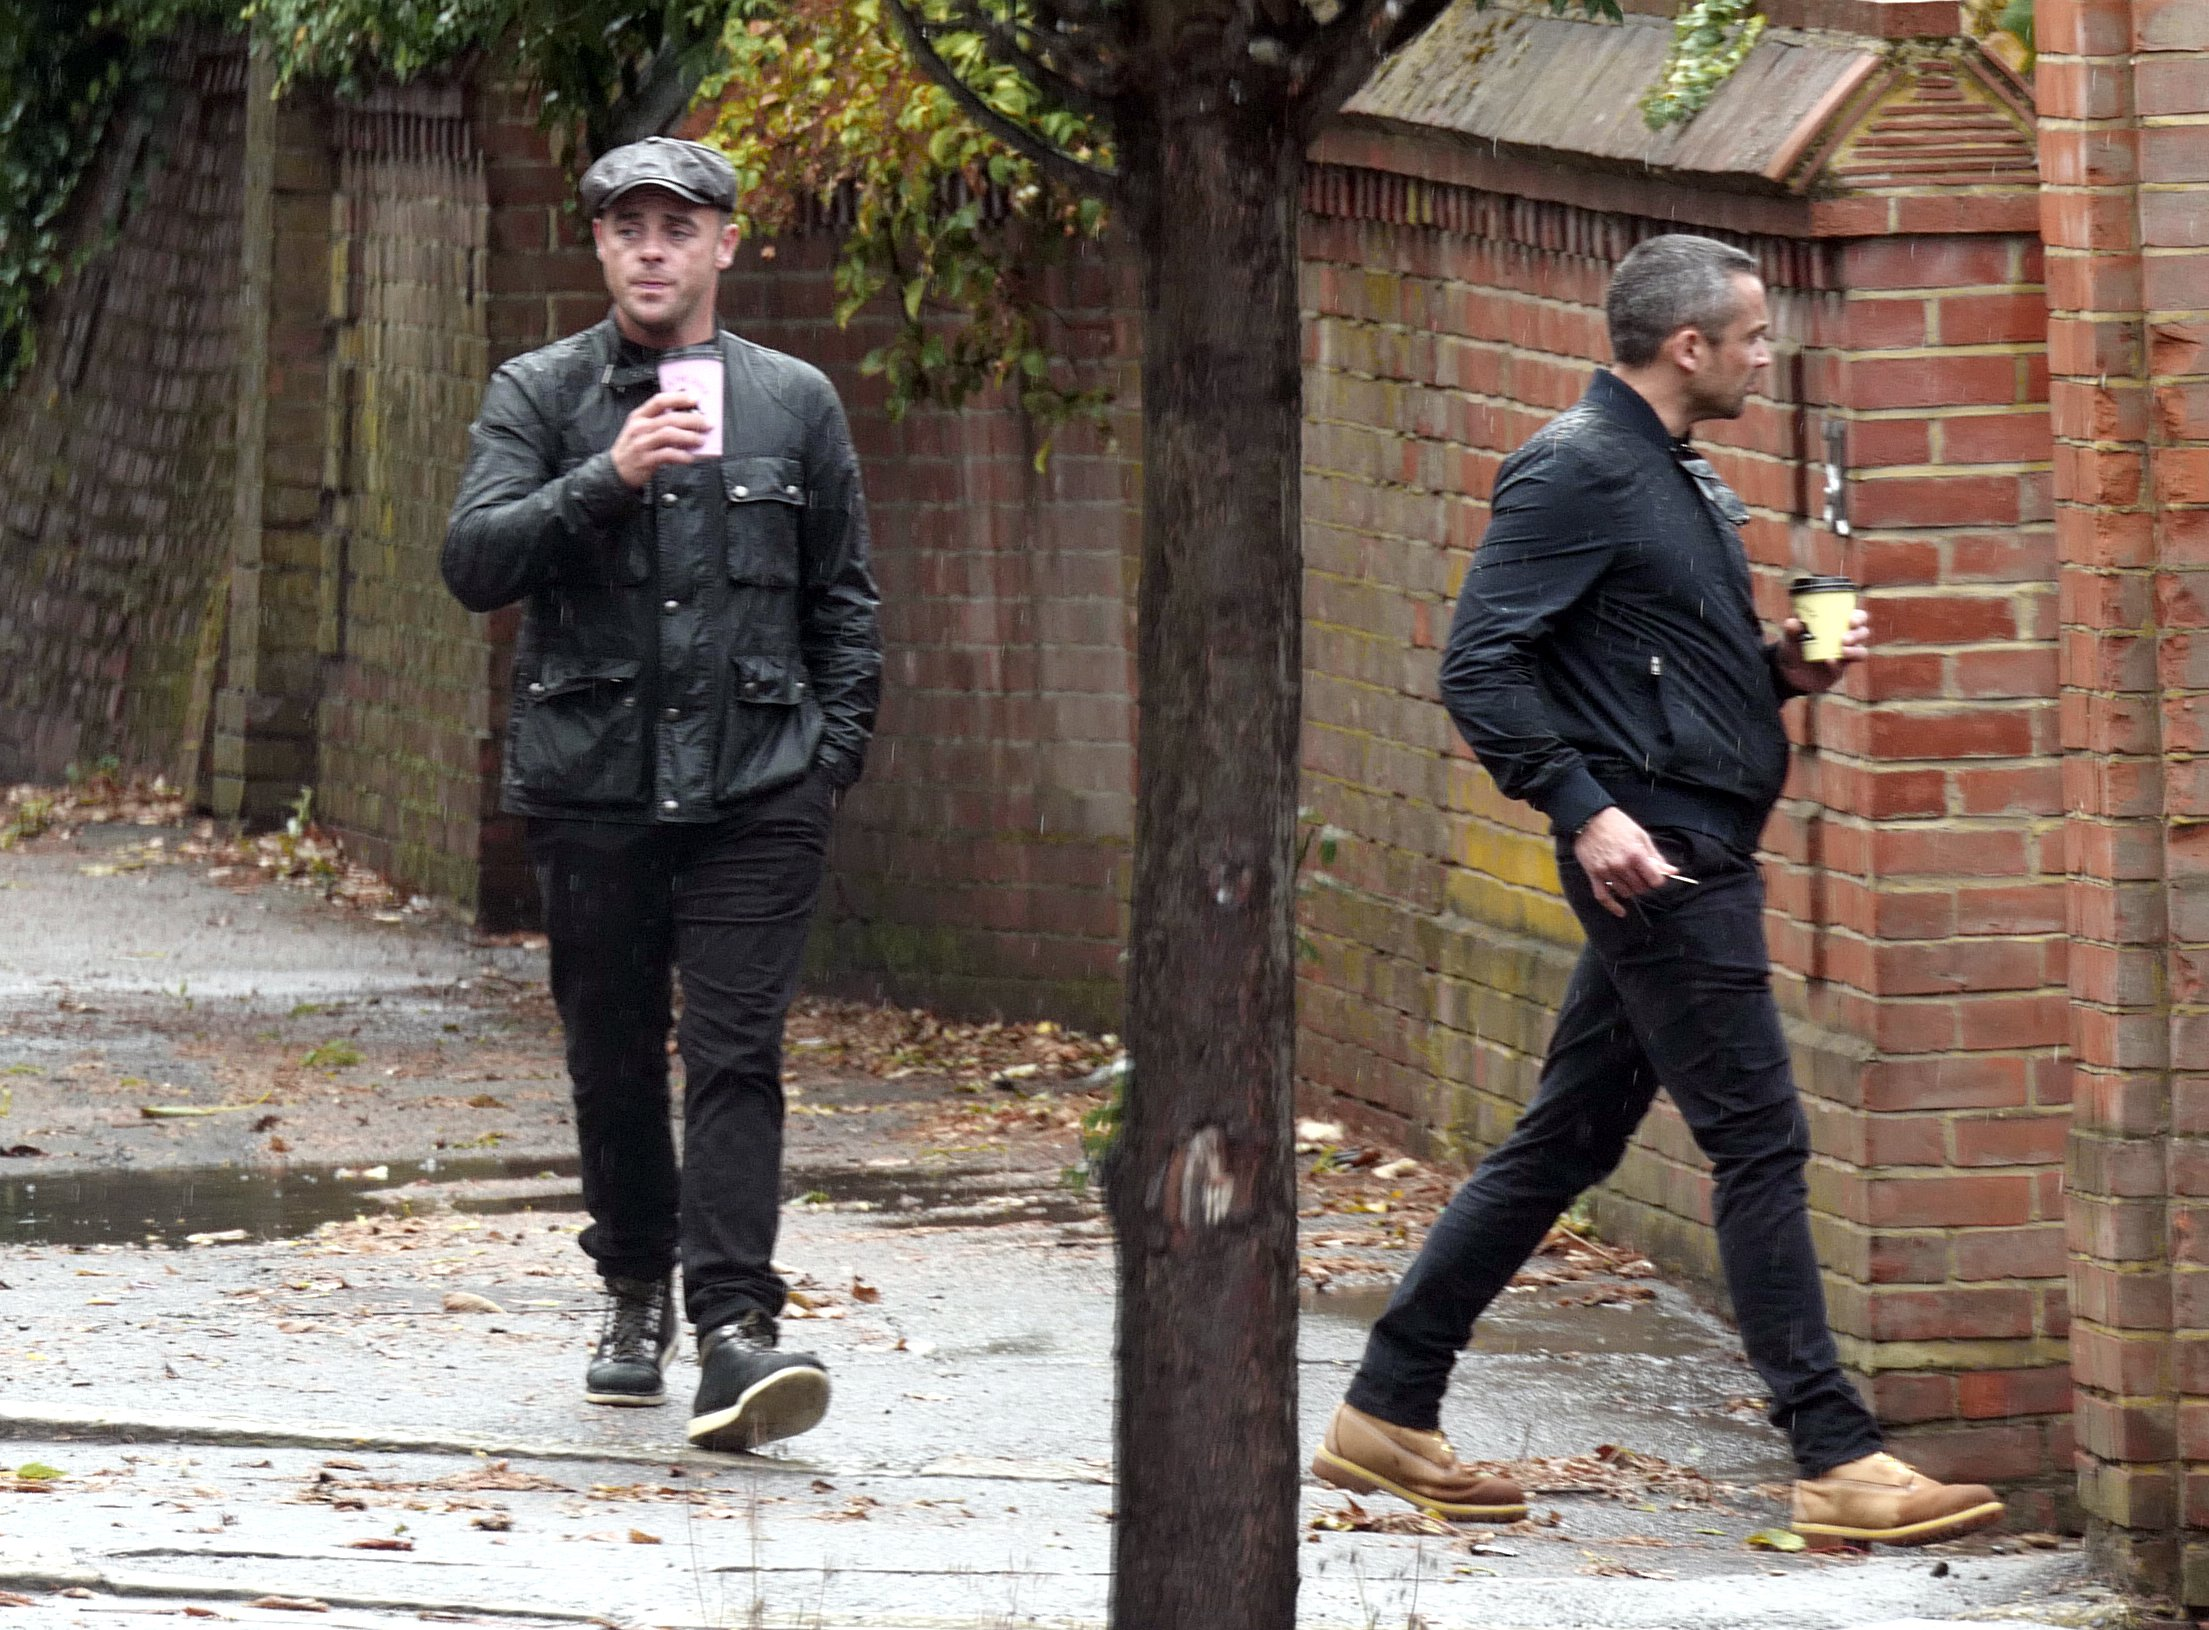 **** NO BYLINE, DO NOT CREDIT **** Ant McPartlin in south west London Taken on: 10/08/18